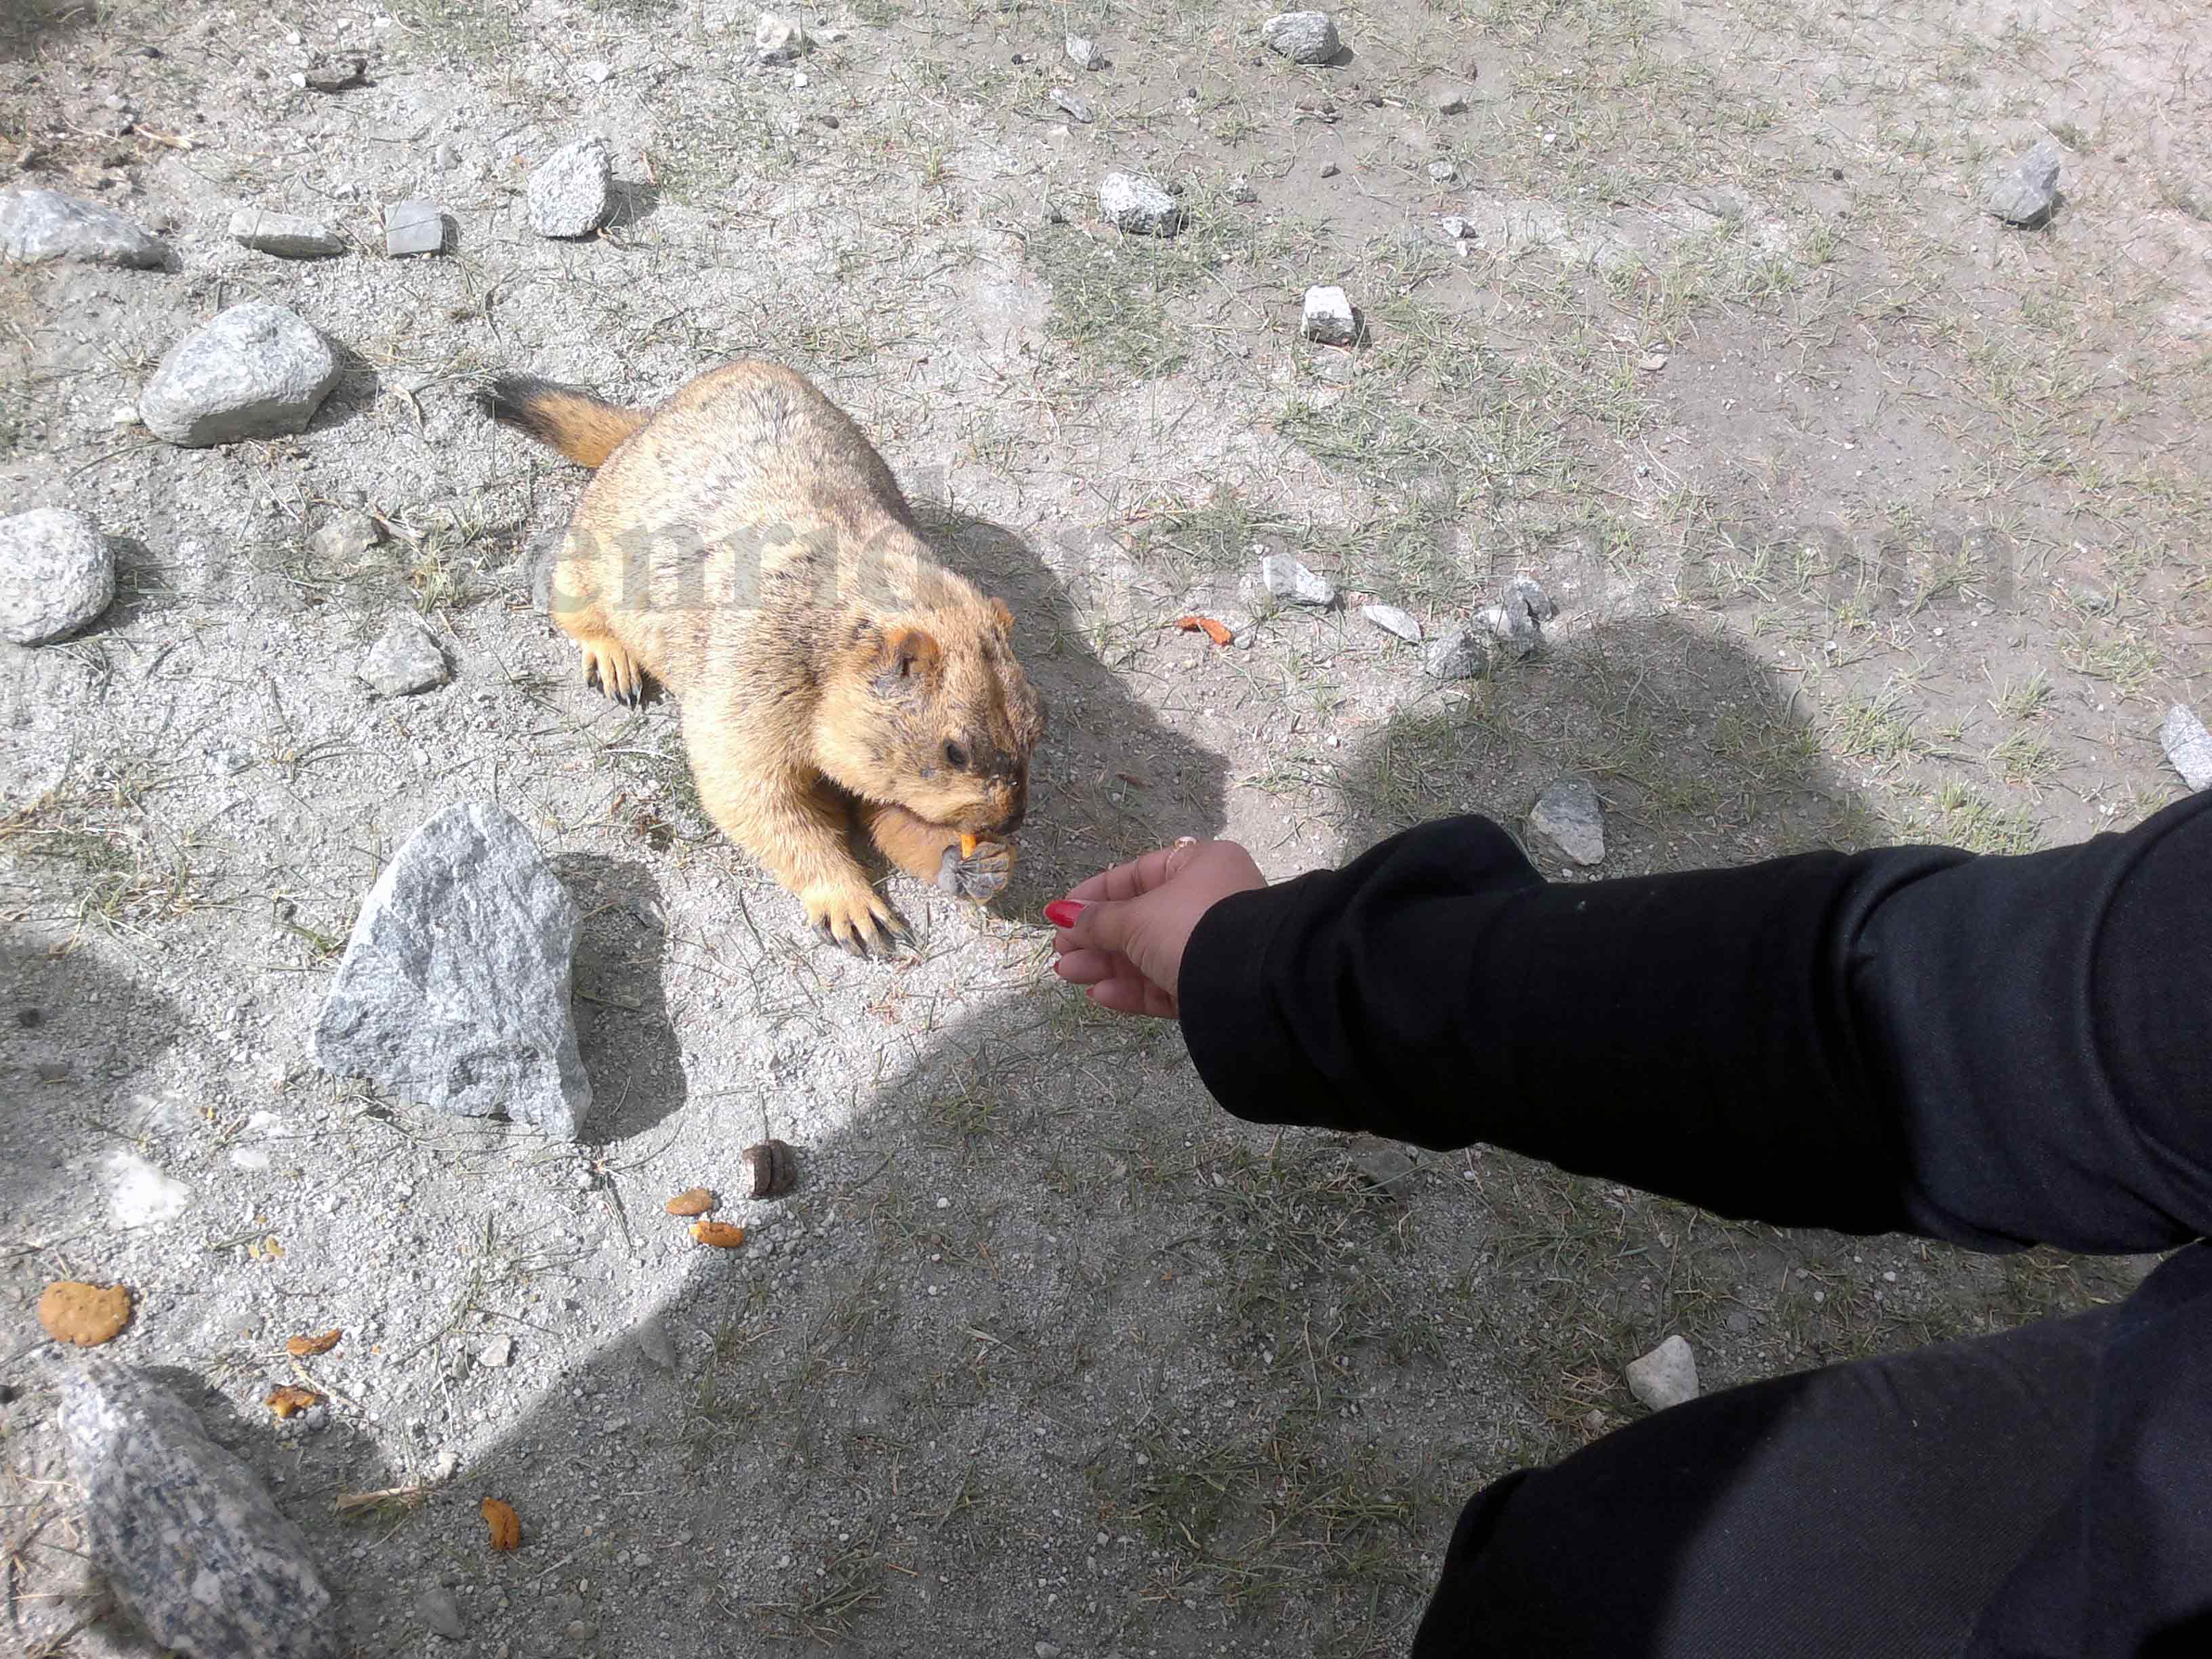 Himalayan Marmot found on road trip to Leh-Ladakh with Heaven Riders India